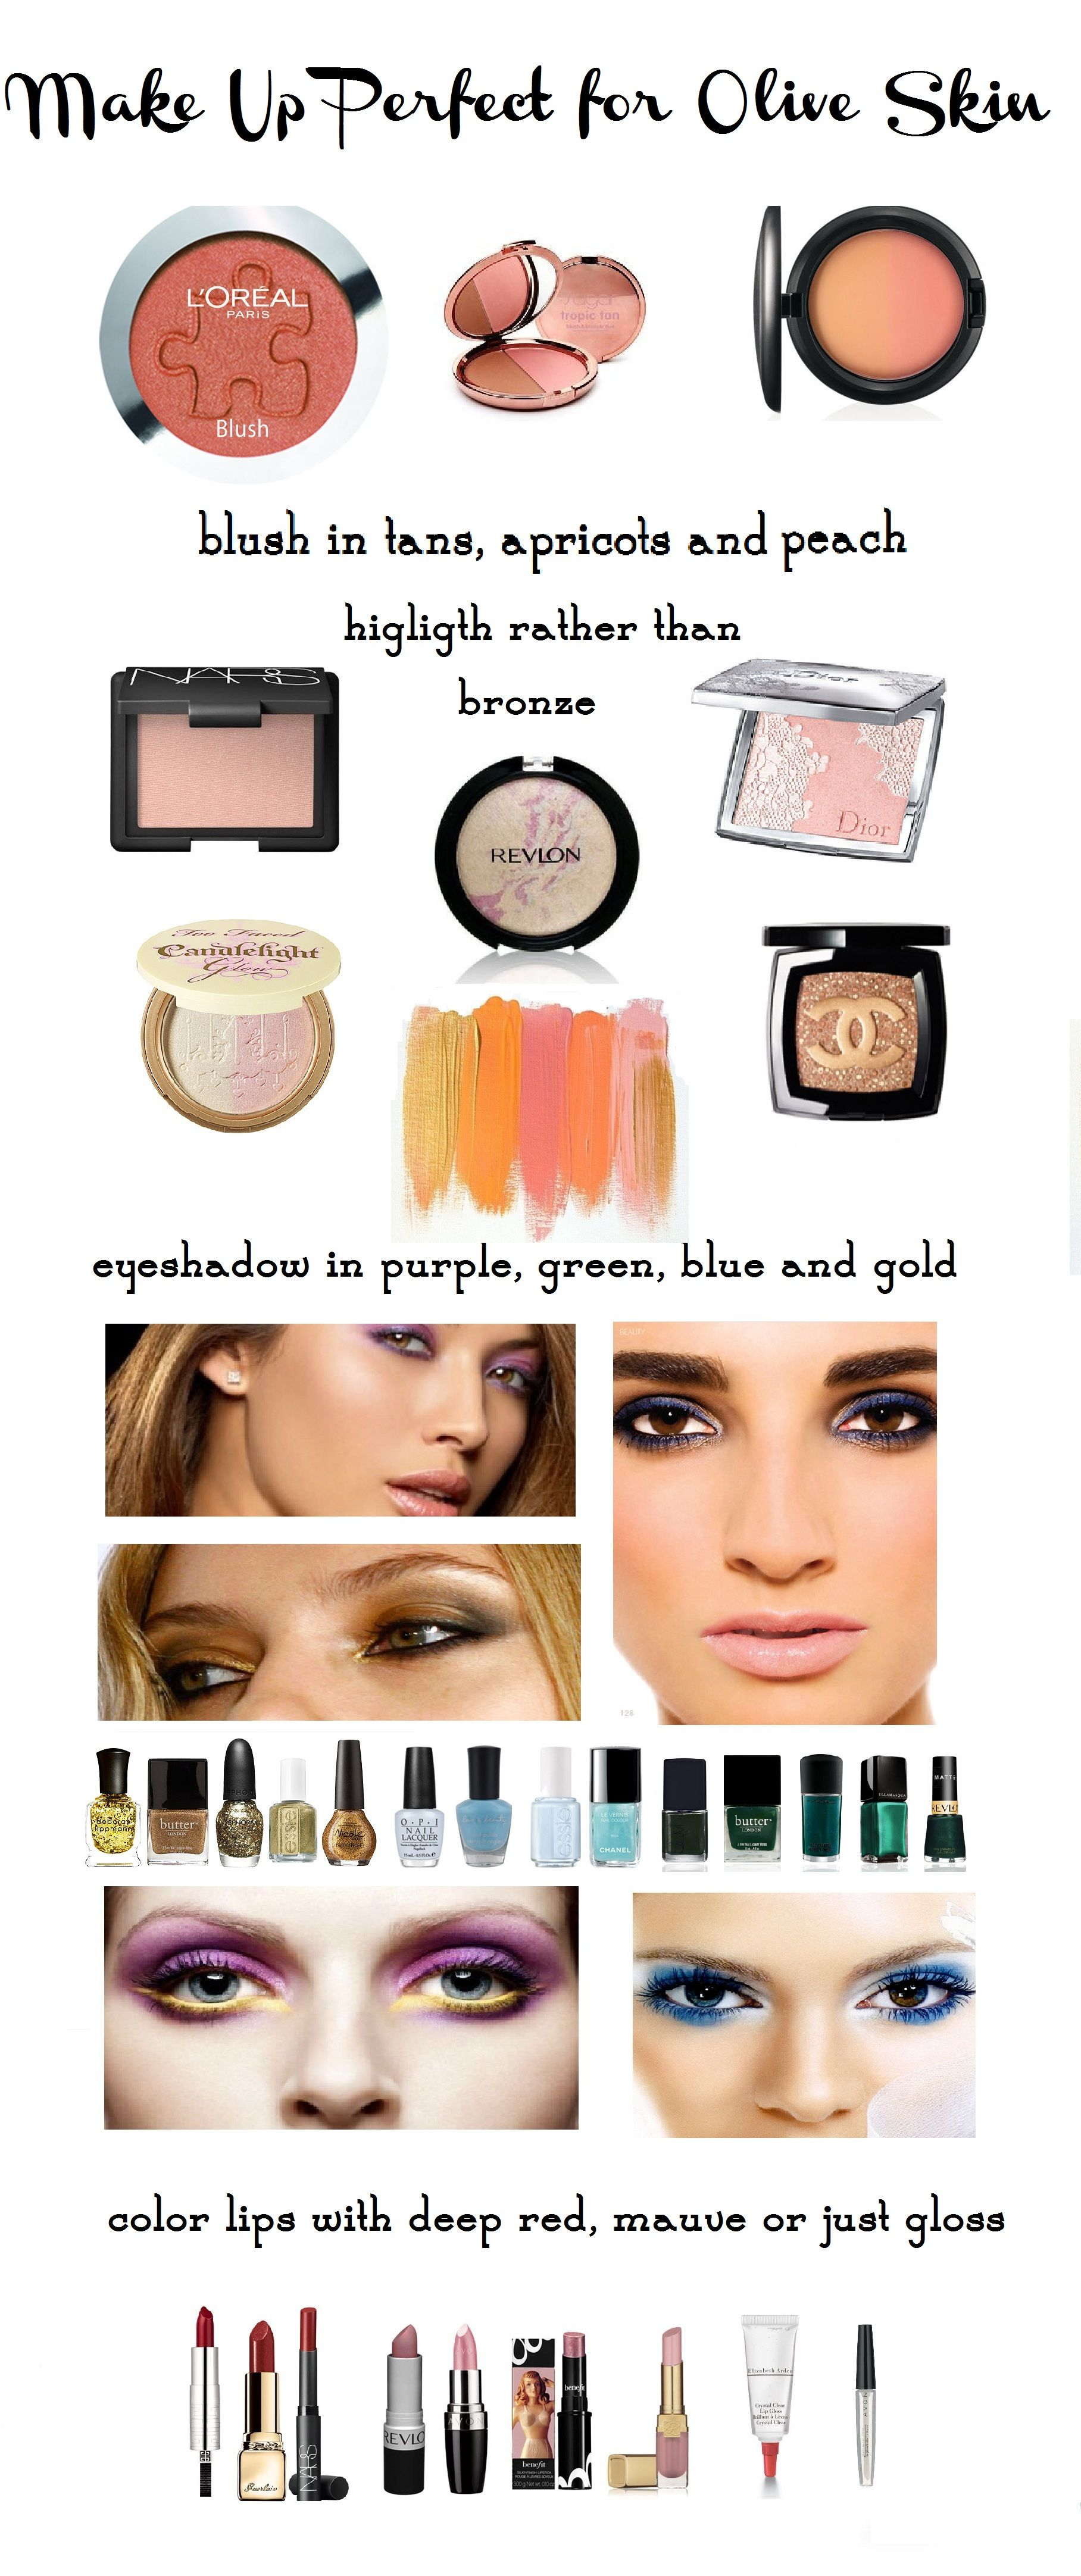 Make Up For Olive Skin Tan Peach Apricot Use Highlighter